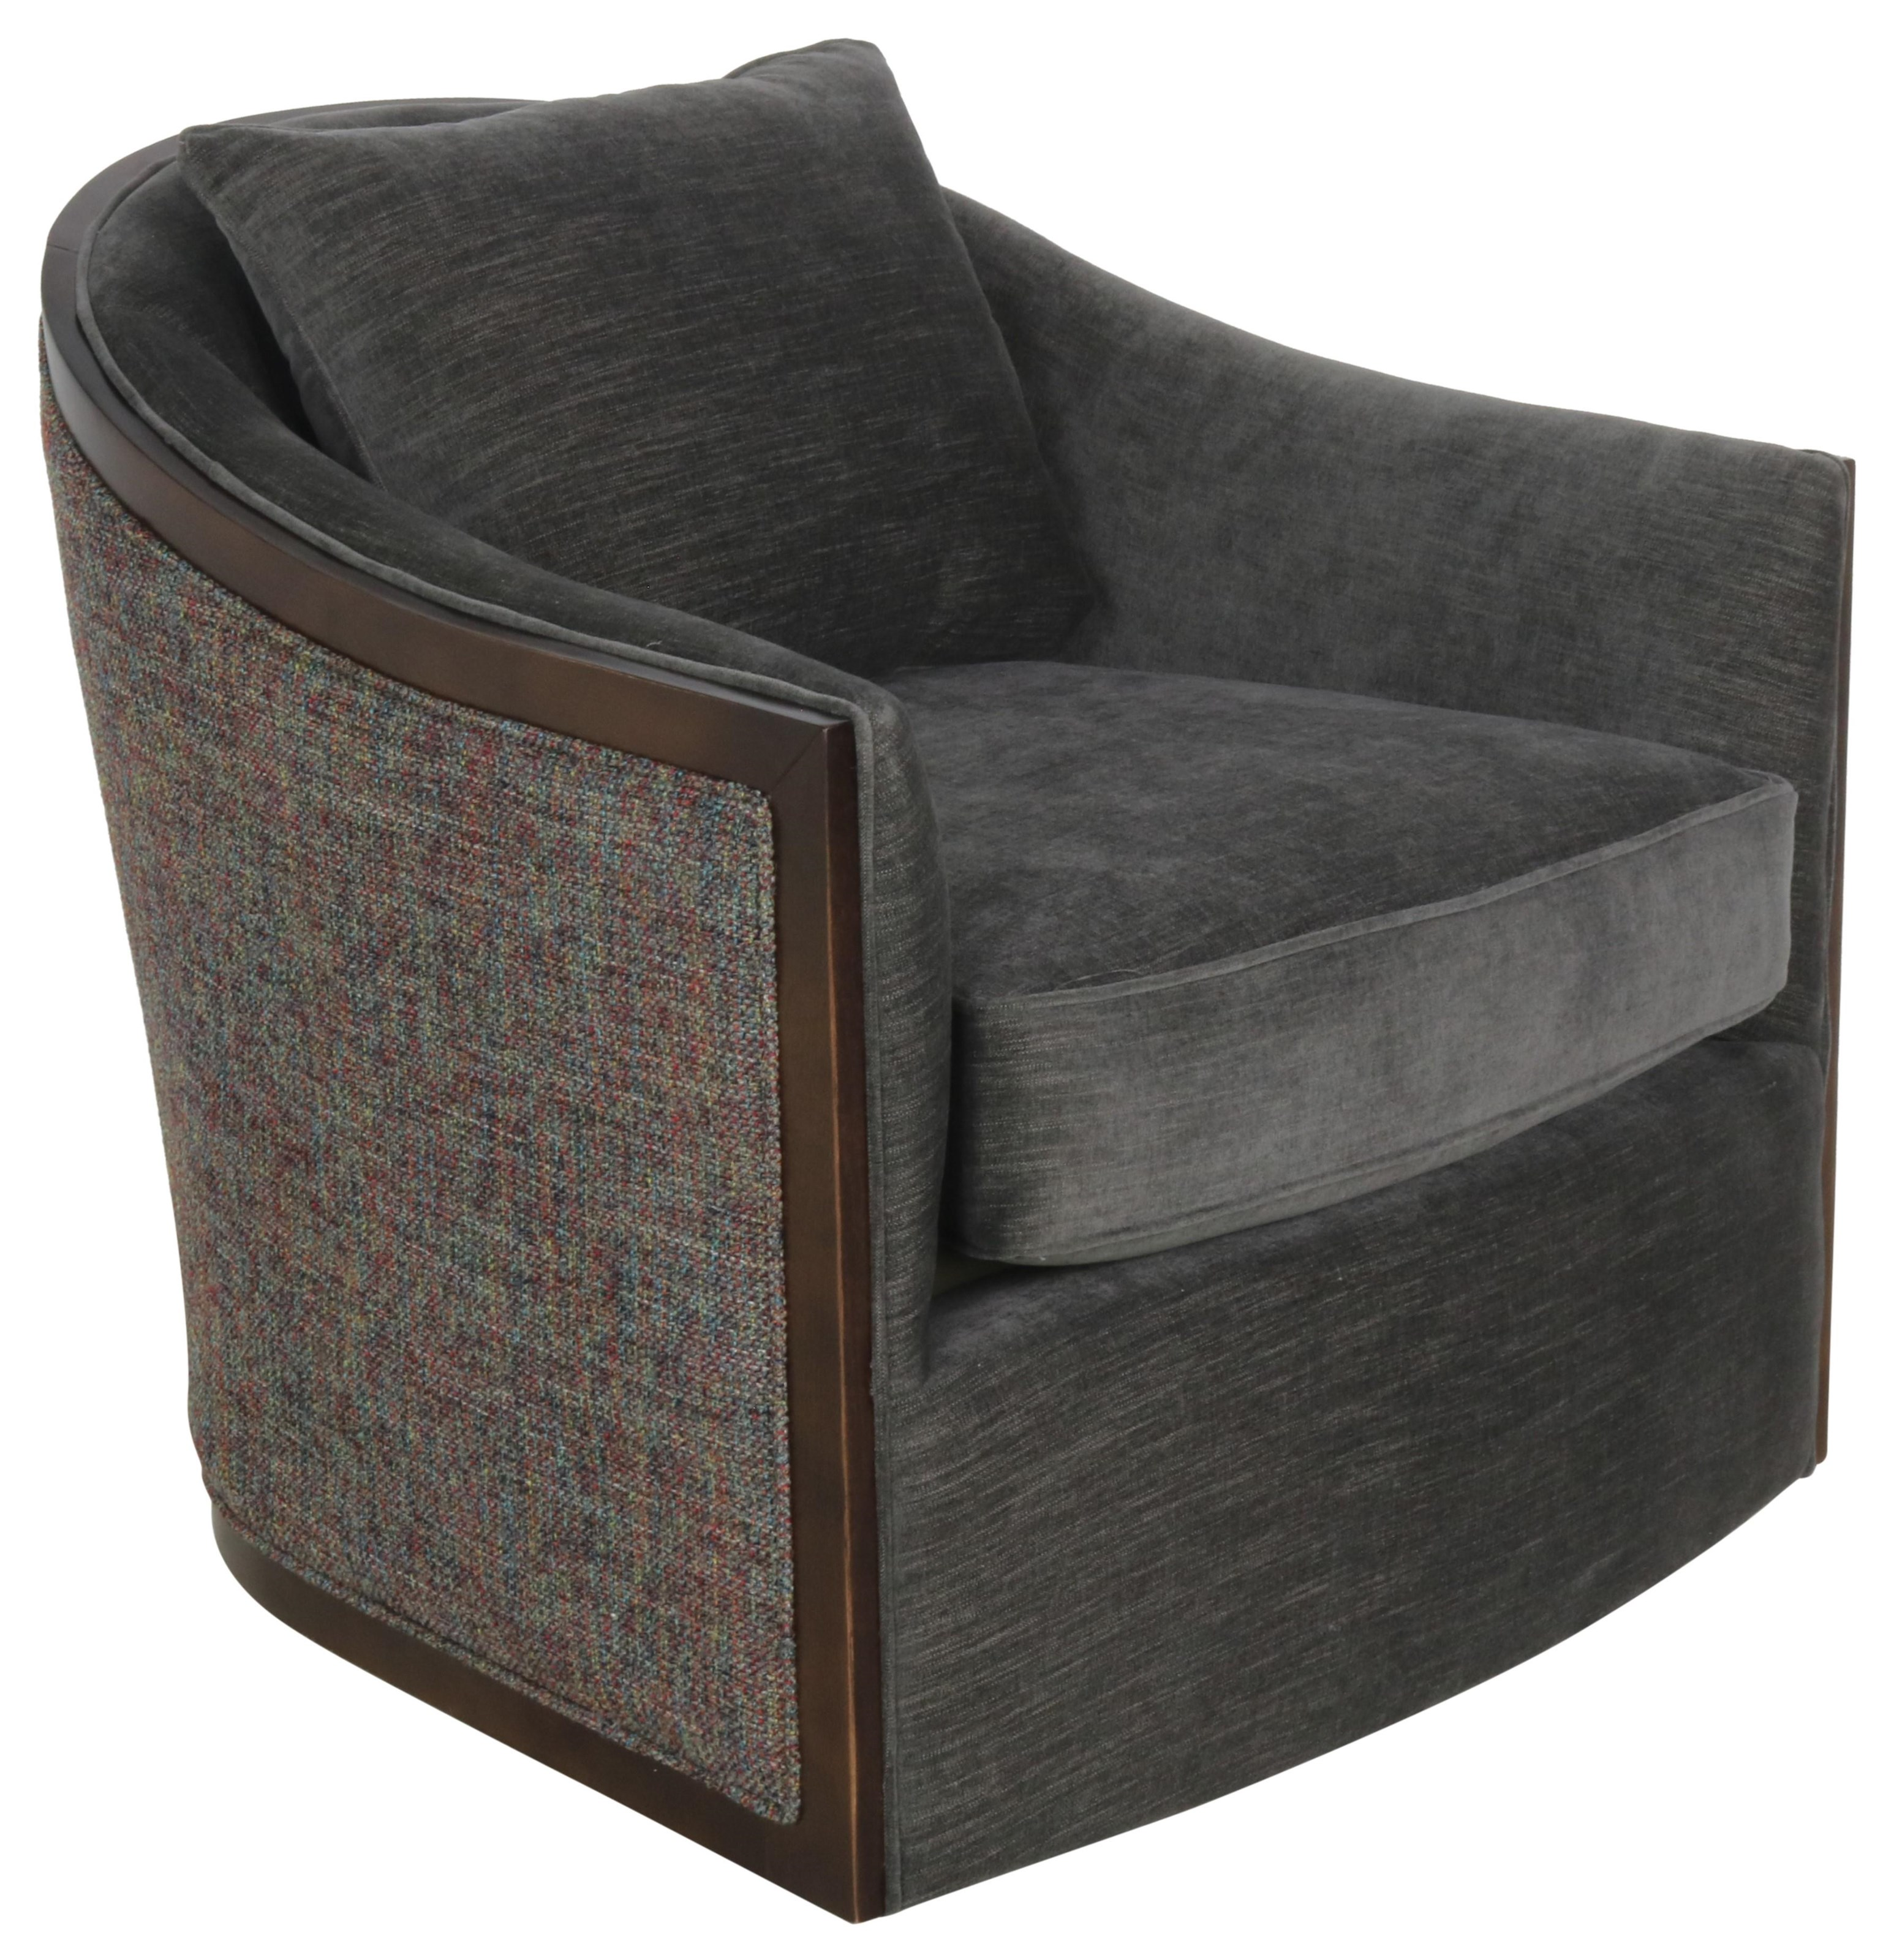 Accent Chair Chair by Sam Moore at Sprintz Furniture